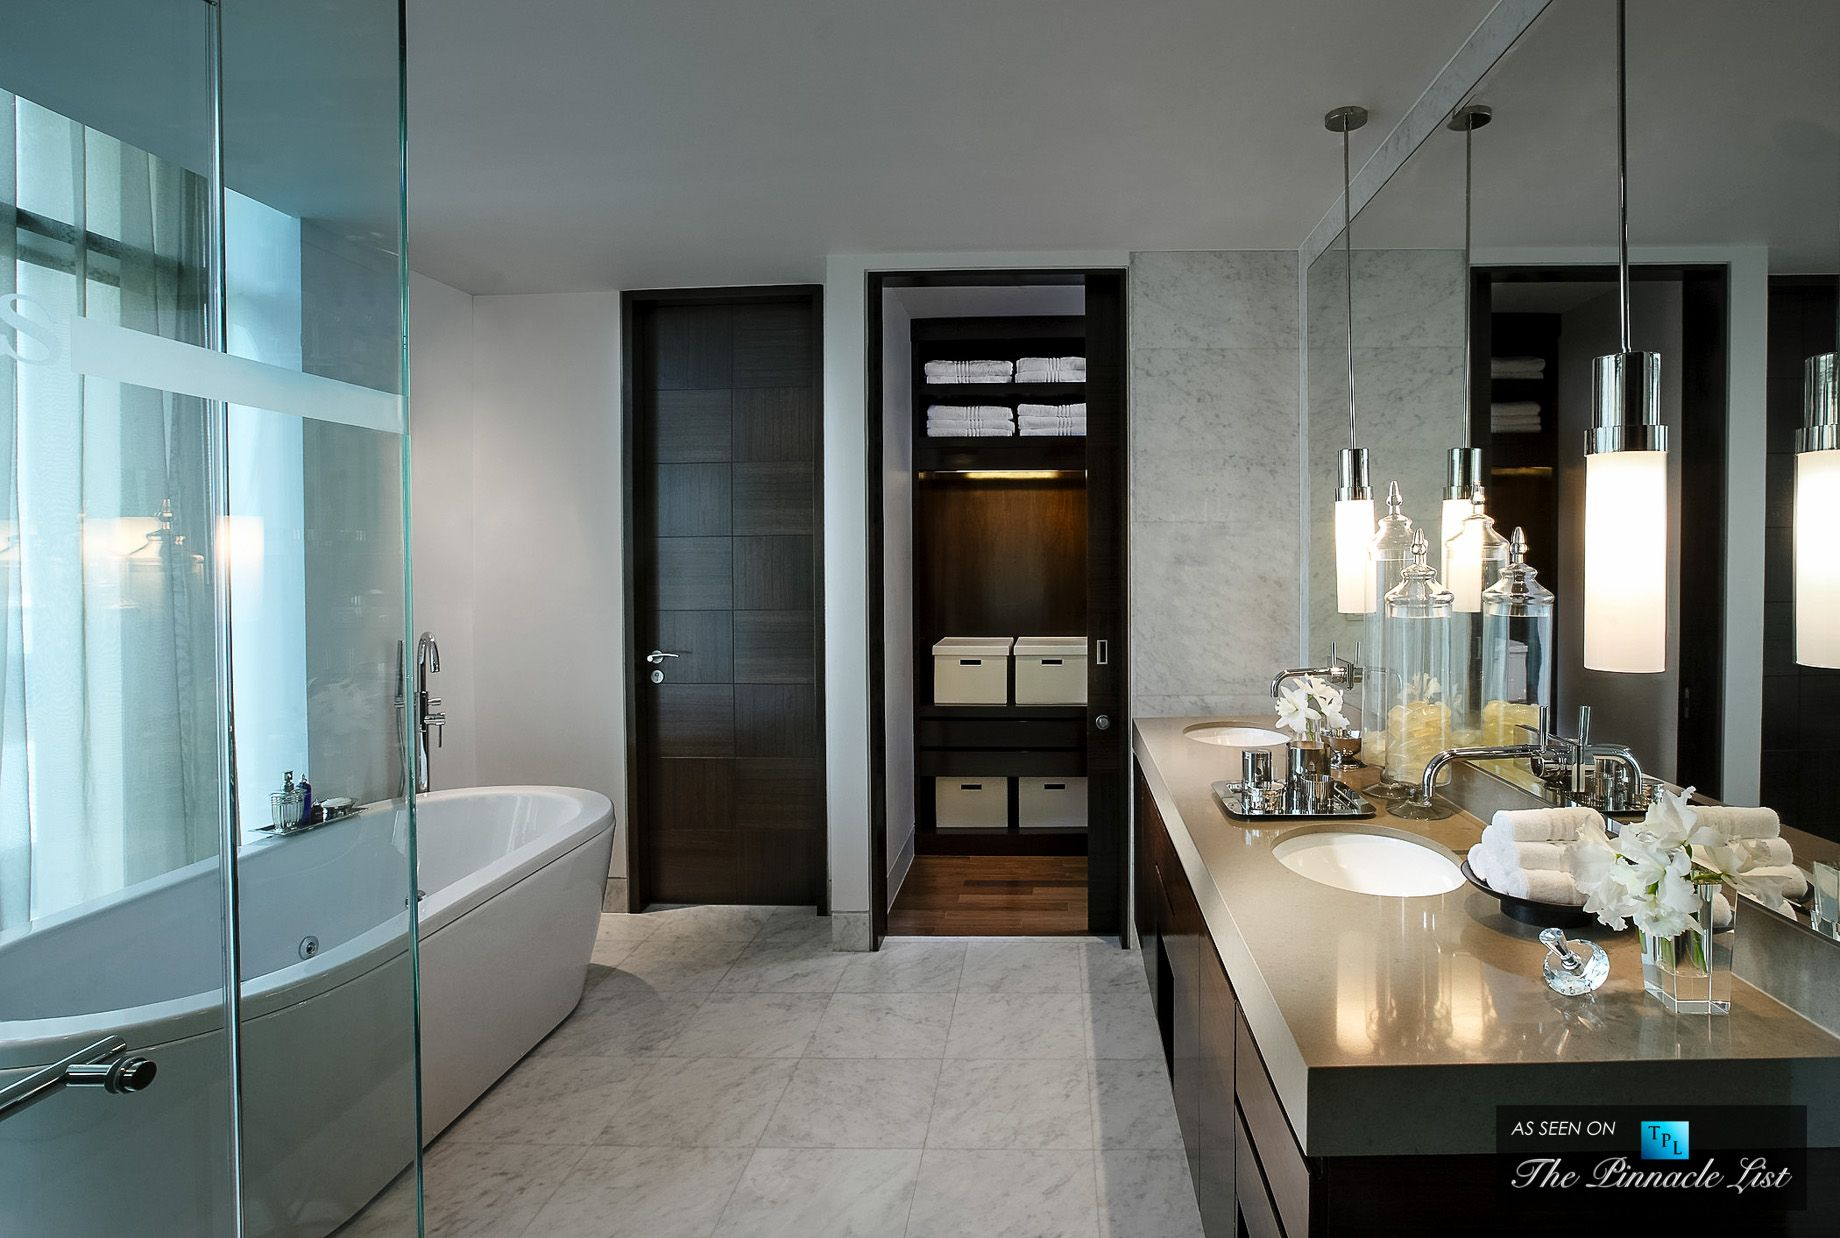 5 star bathroom designs - St Regis Luxury Hotel Bangkok Thailand Residence Bathroom